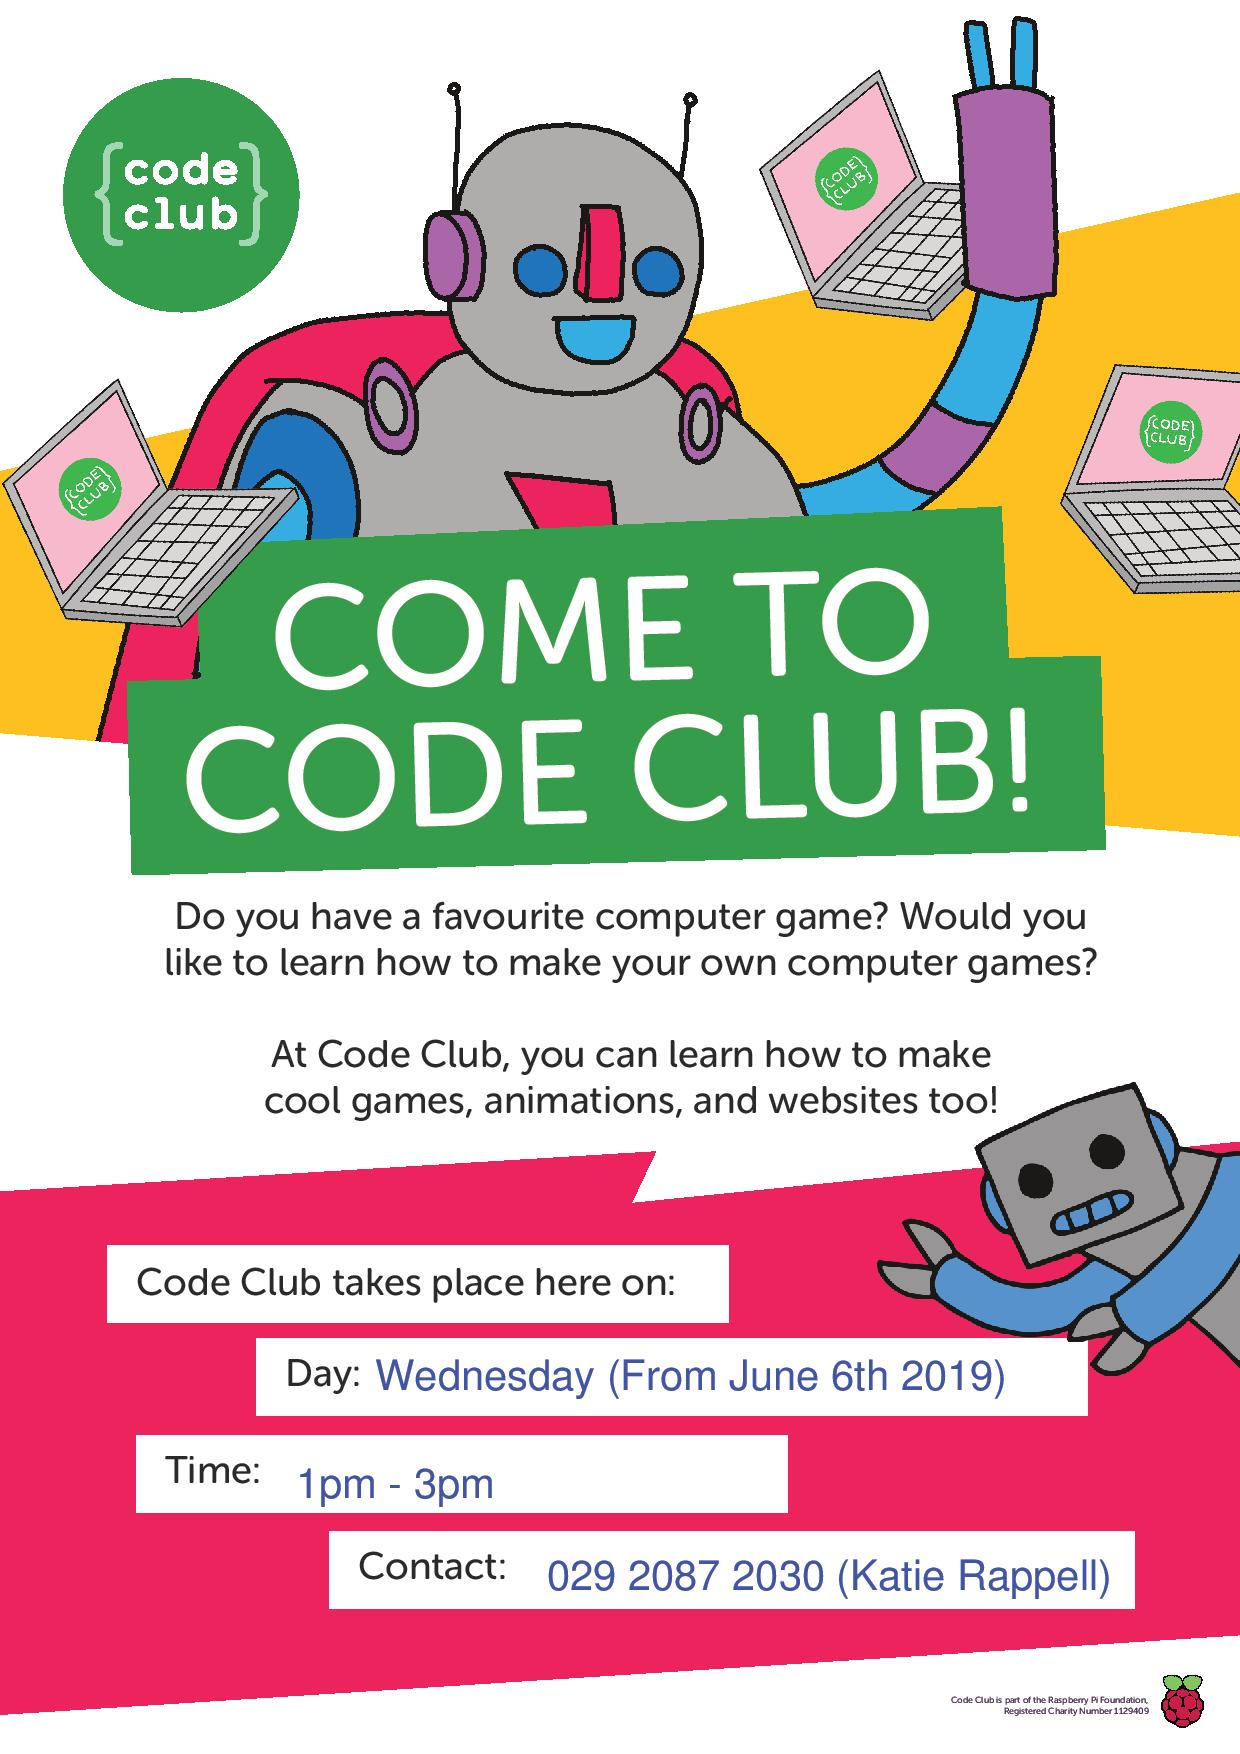 Code club poster